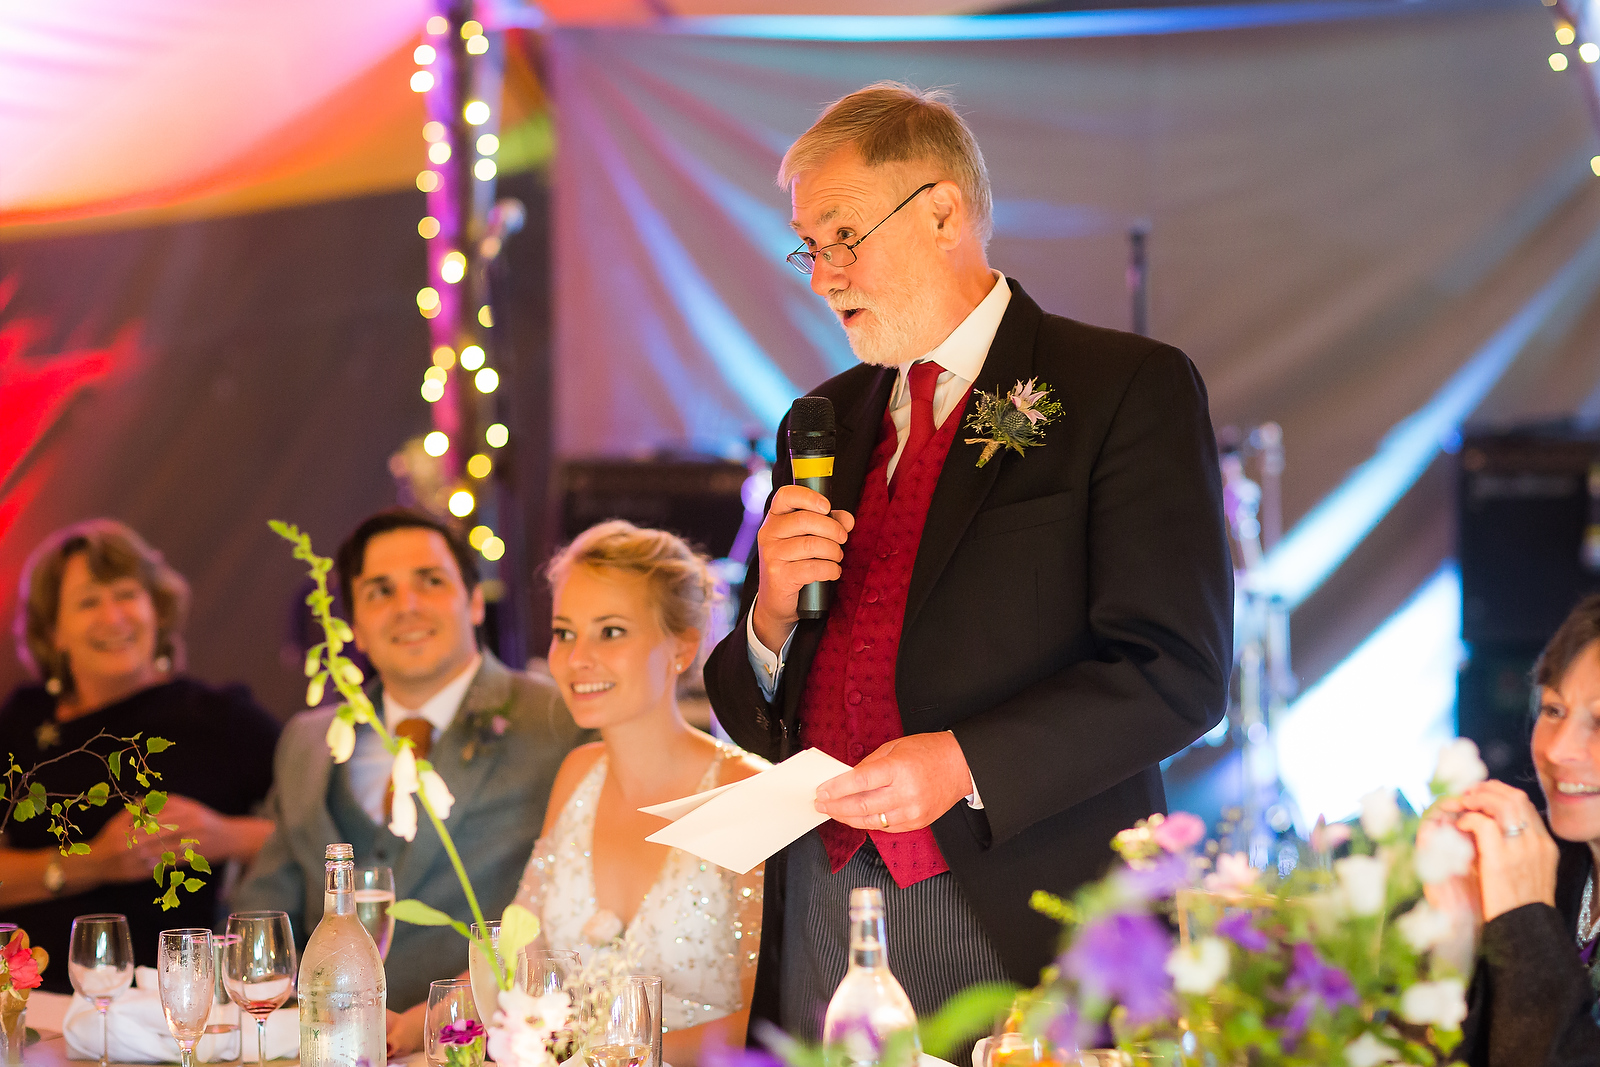 Harriet & William's PapaKåta Teepee Wedding at Gilmerton House captured by First Light Photography- Wedding Speeches